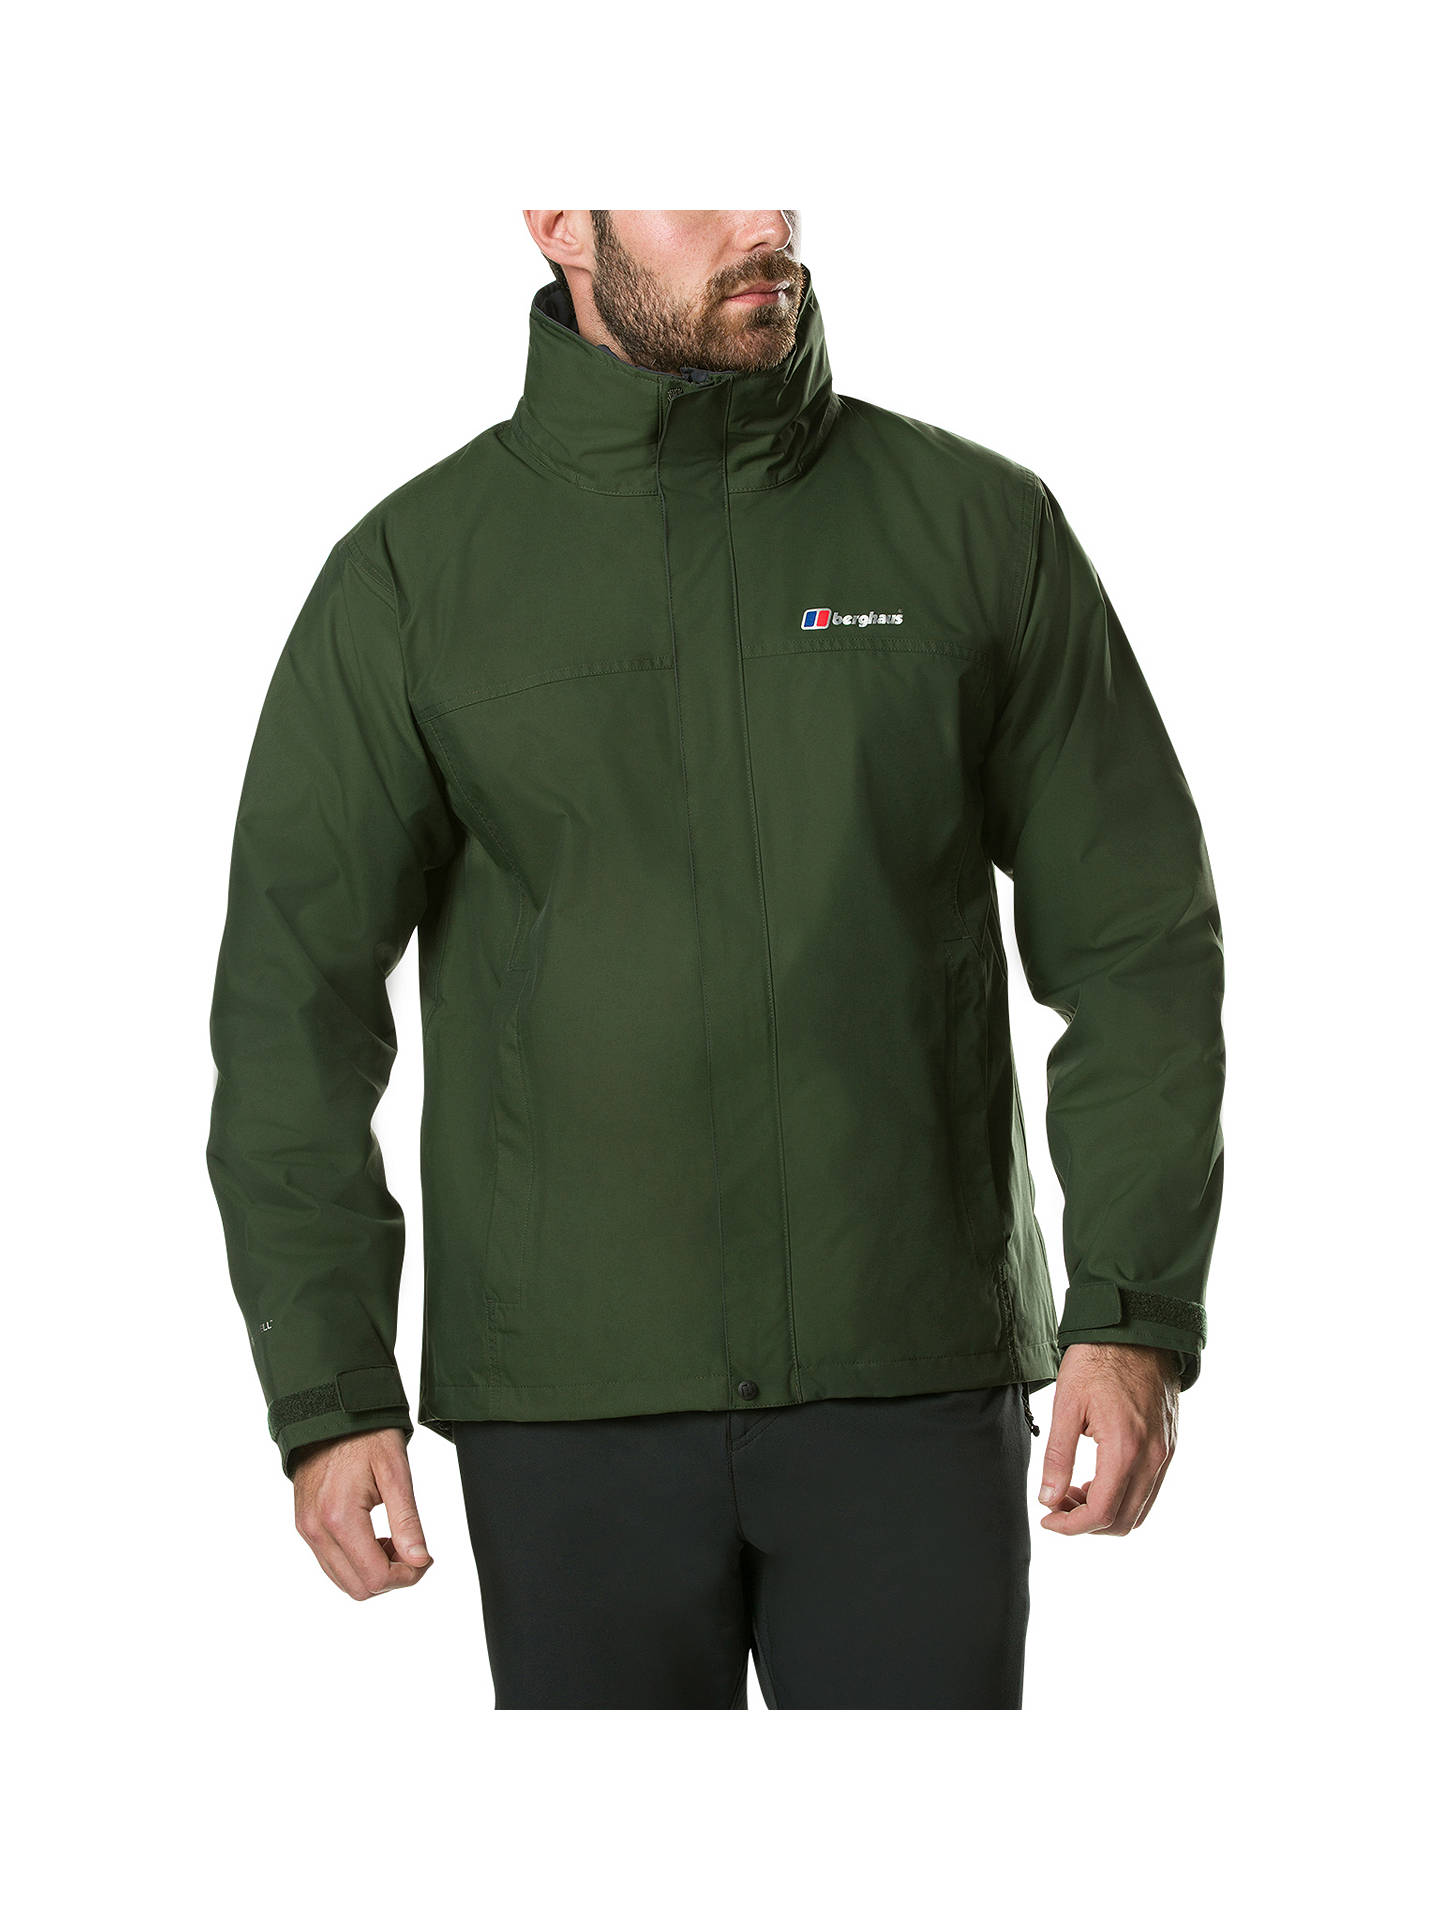 Buy Berghaus RG Alpha 3-in-1 Waterproof Men's Jacket, Dark Green, M Online at johnlewis.com